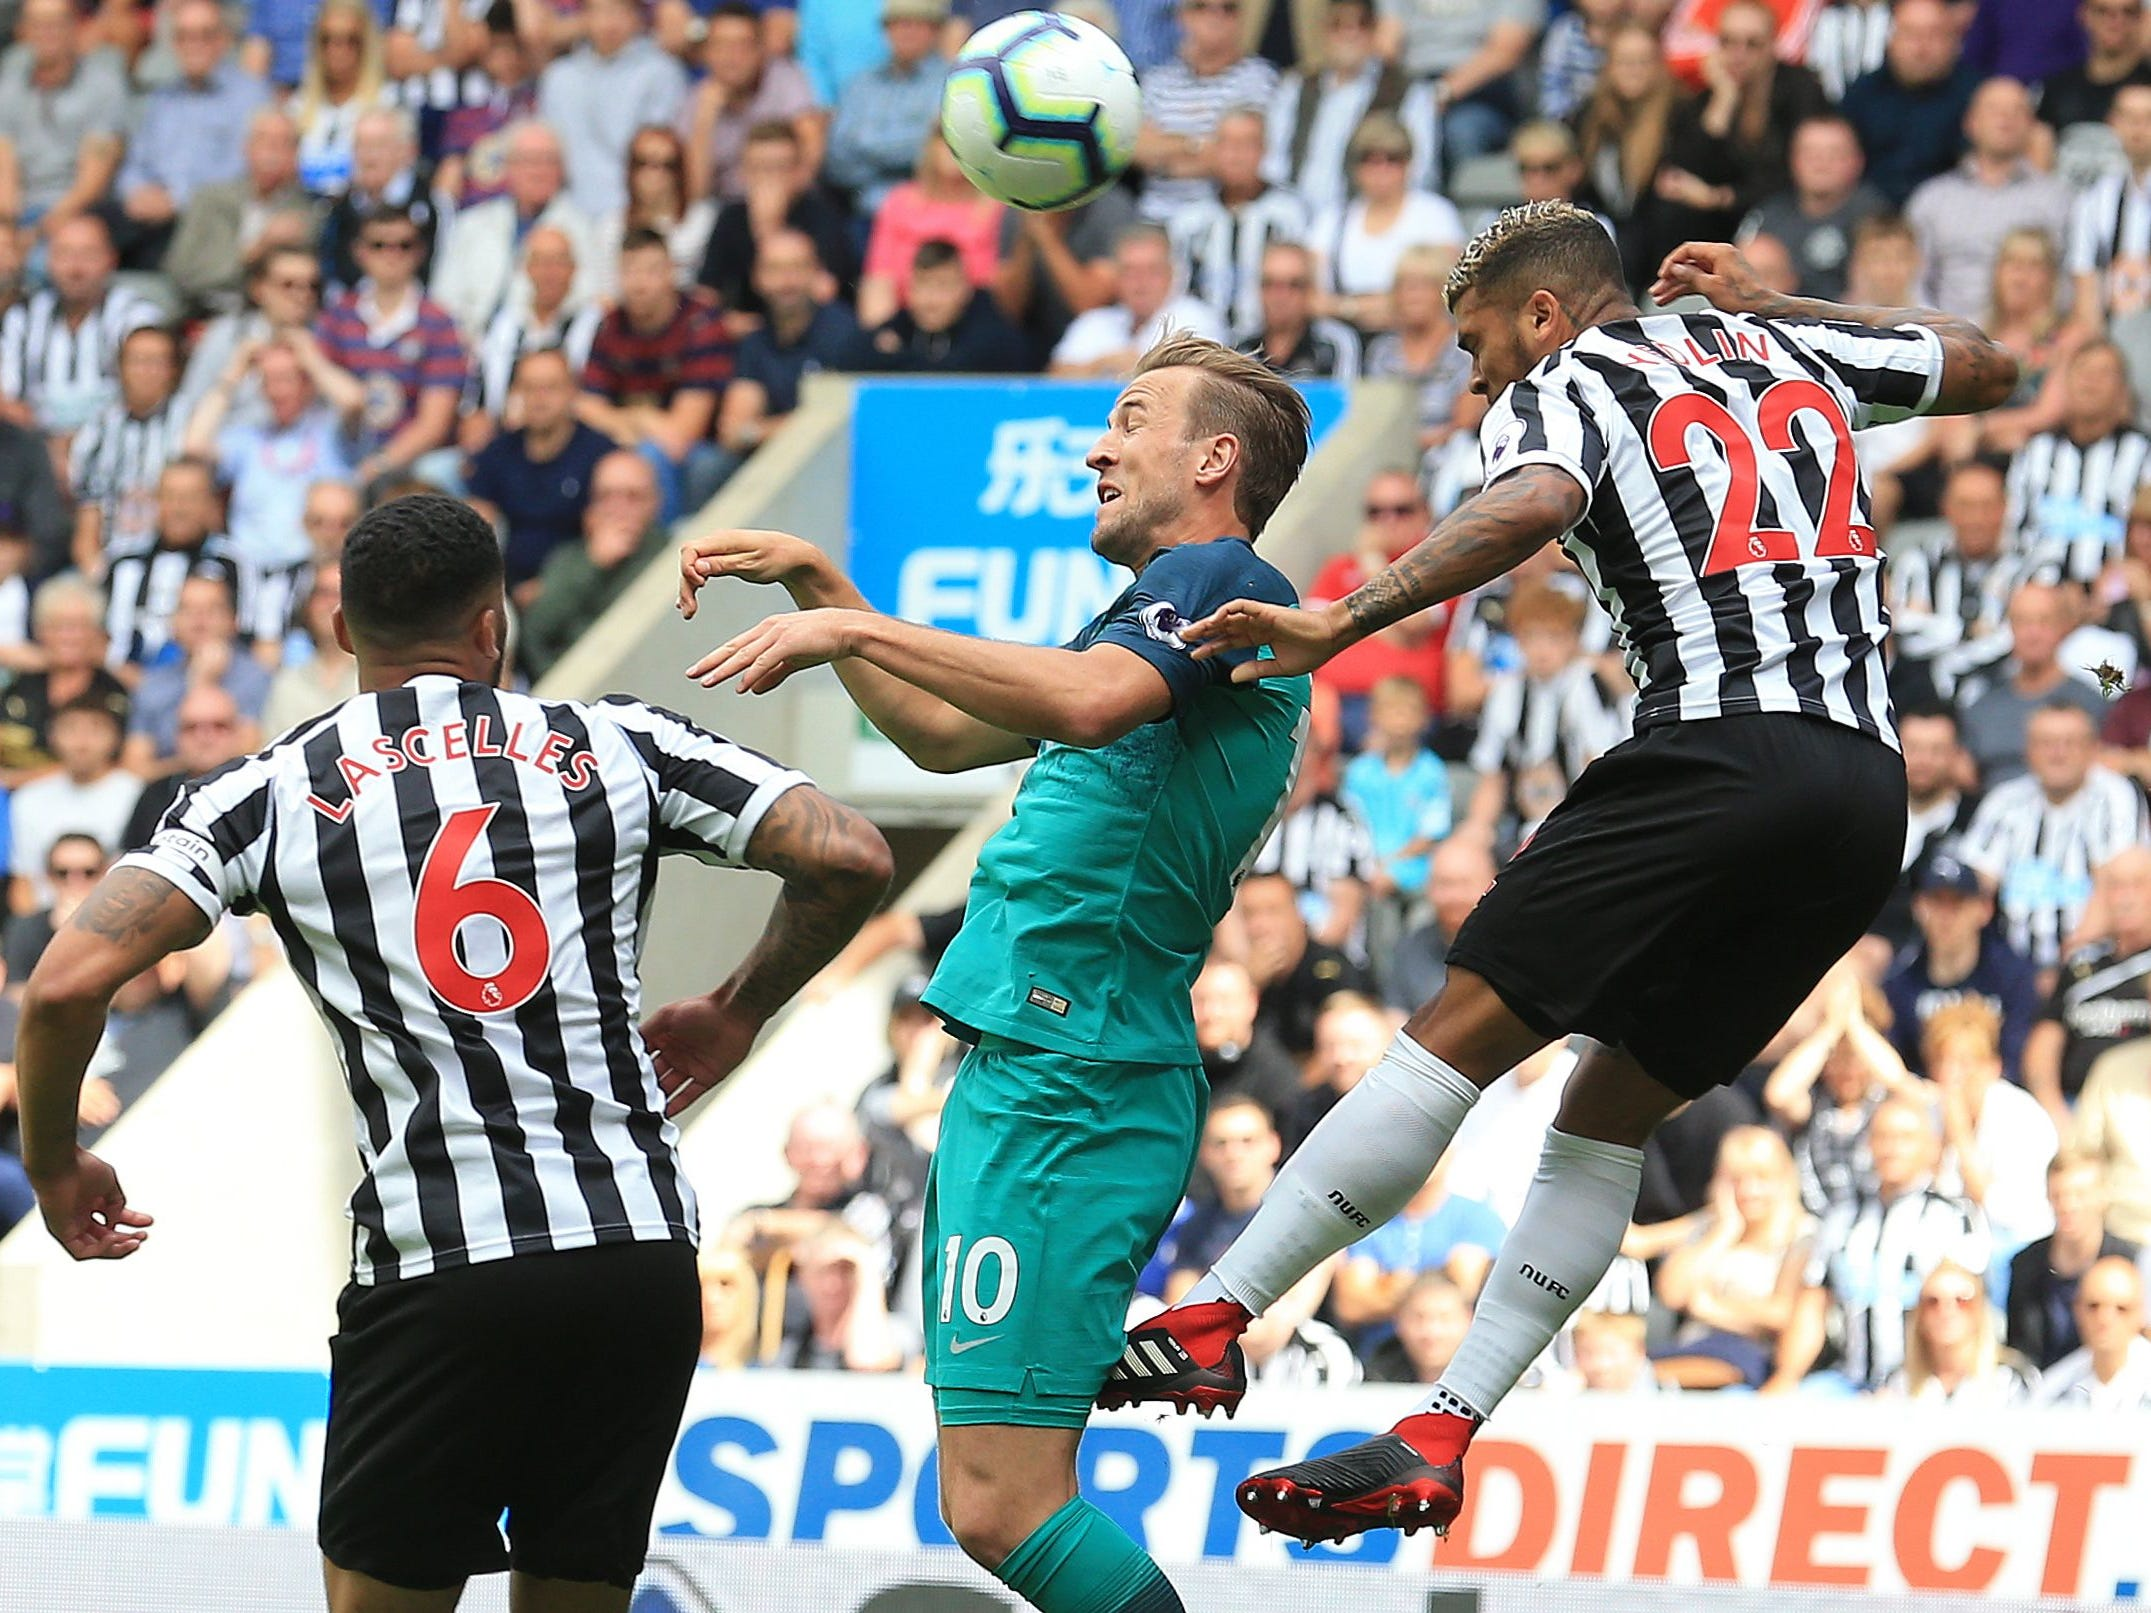 Tottenham's Harry Kane goes up for the ball against Newcastle United's Jamaal Lascelles and DeAndre Yedlin.